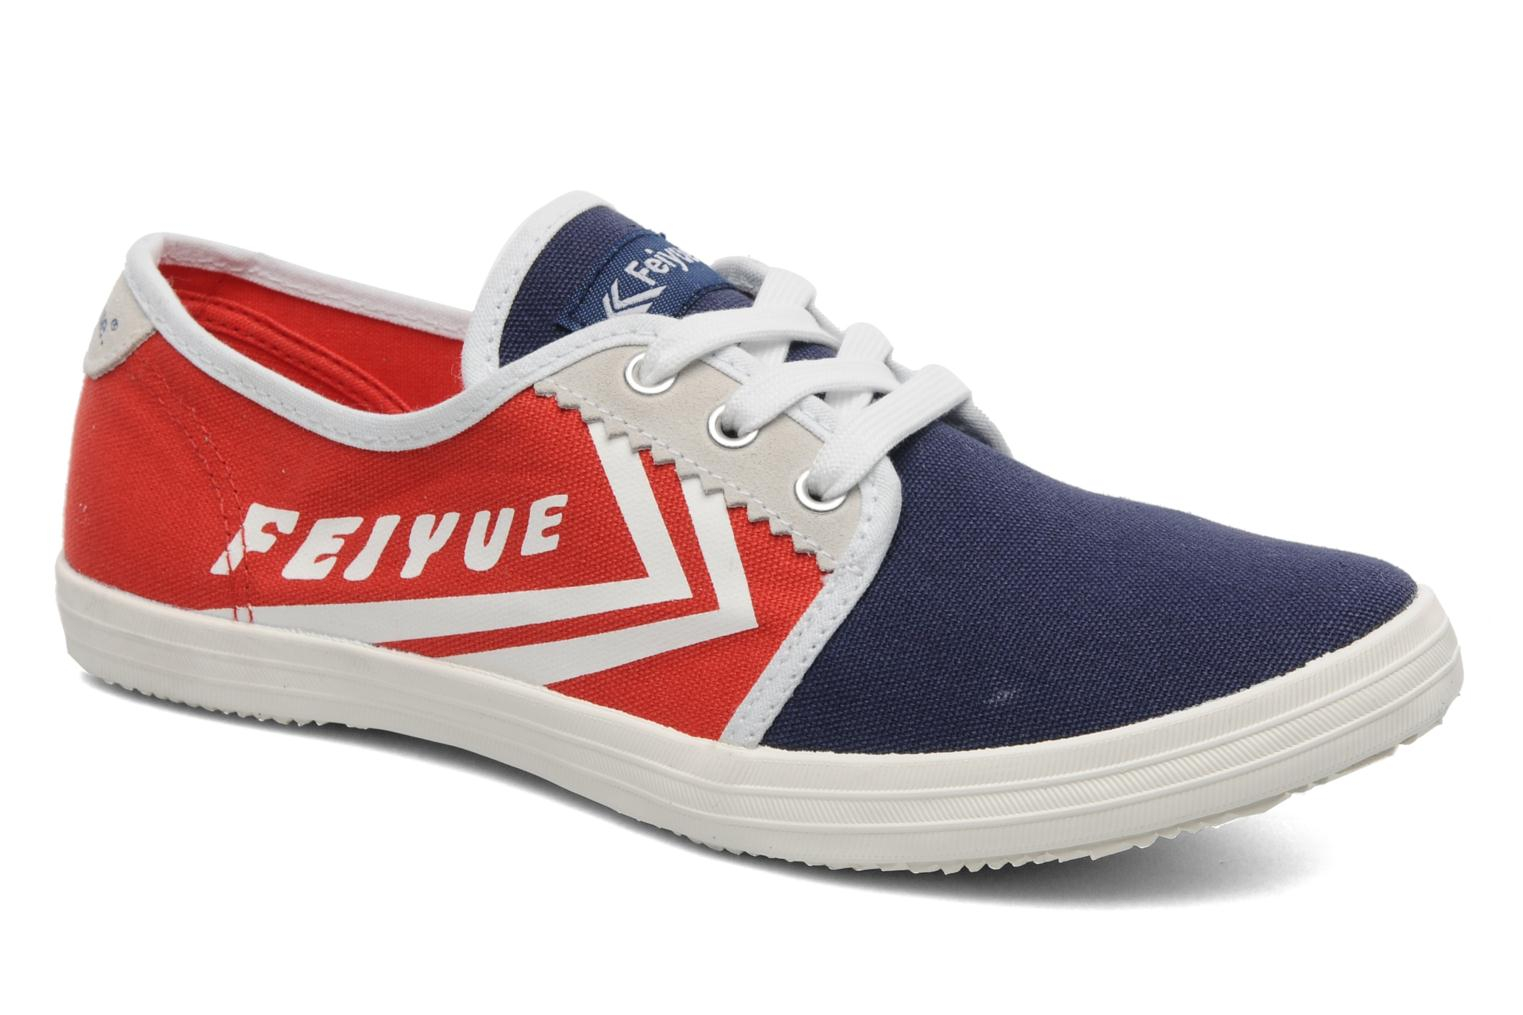 Sneakers San Remo by Feiyue